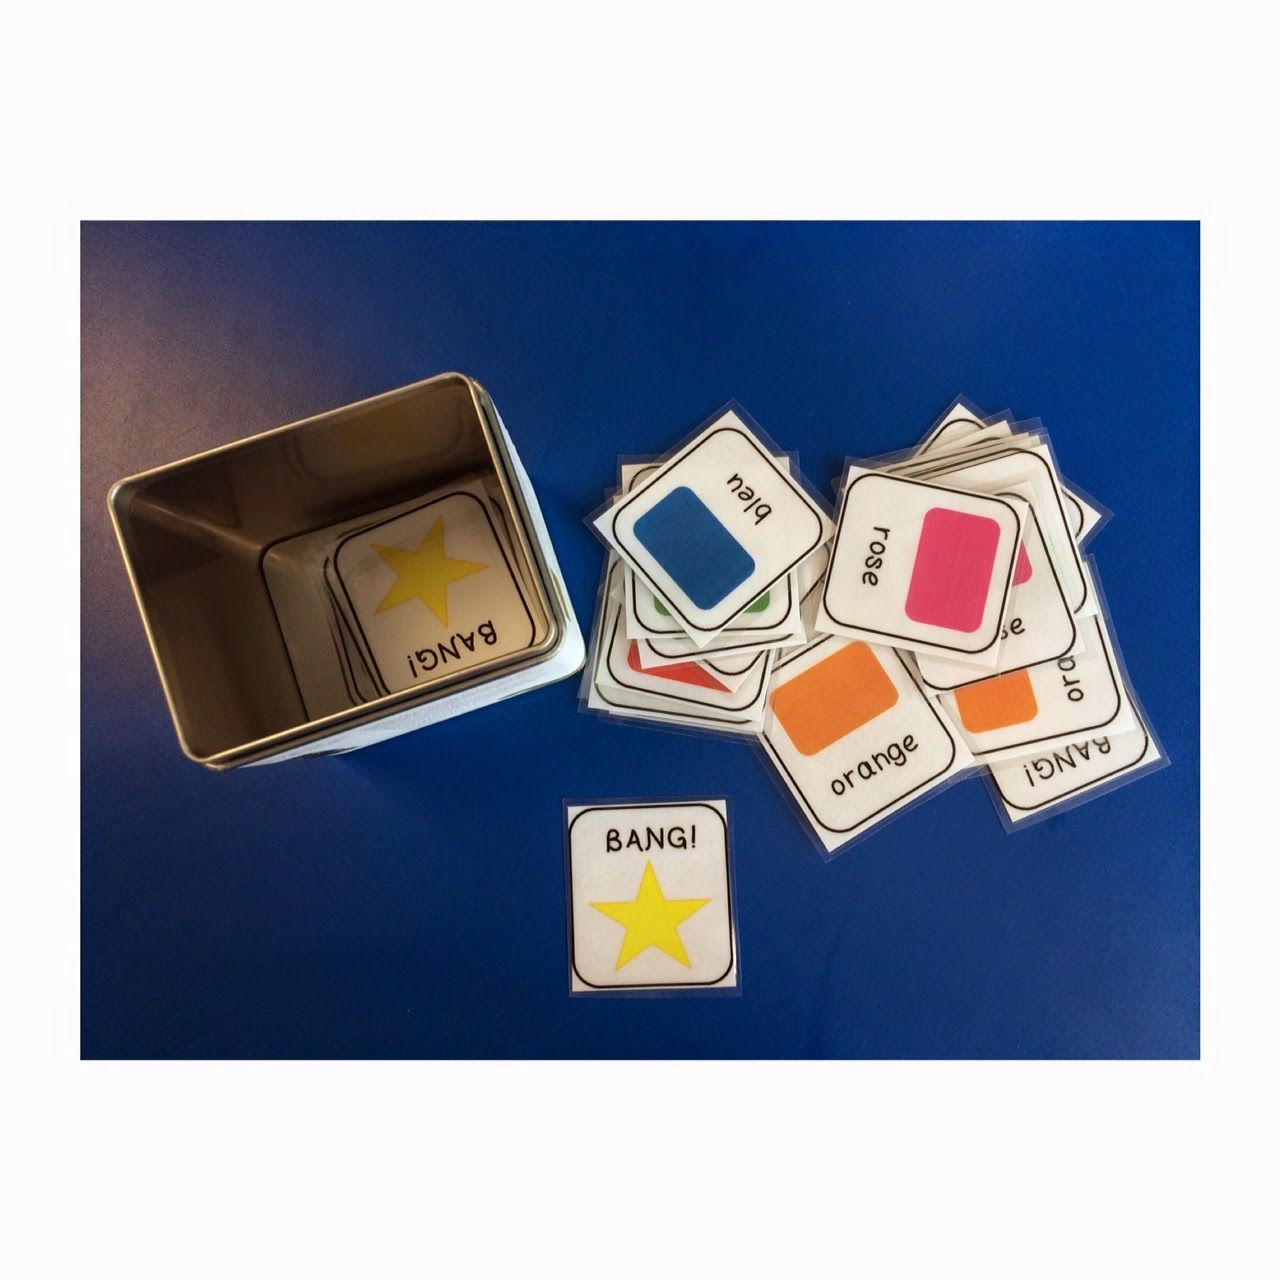 Primary French Immersion Resources Colours And More